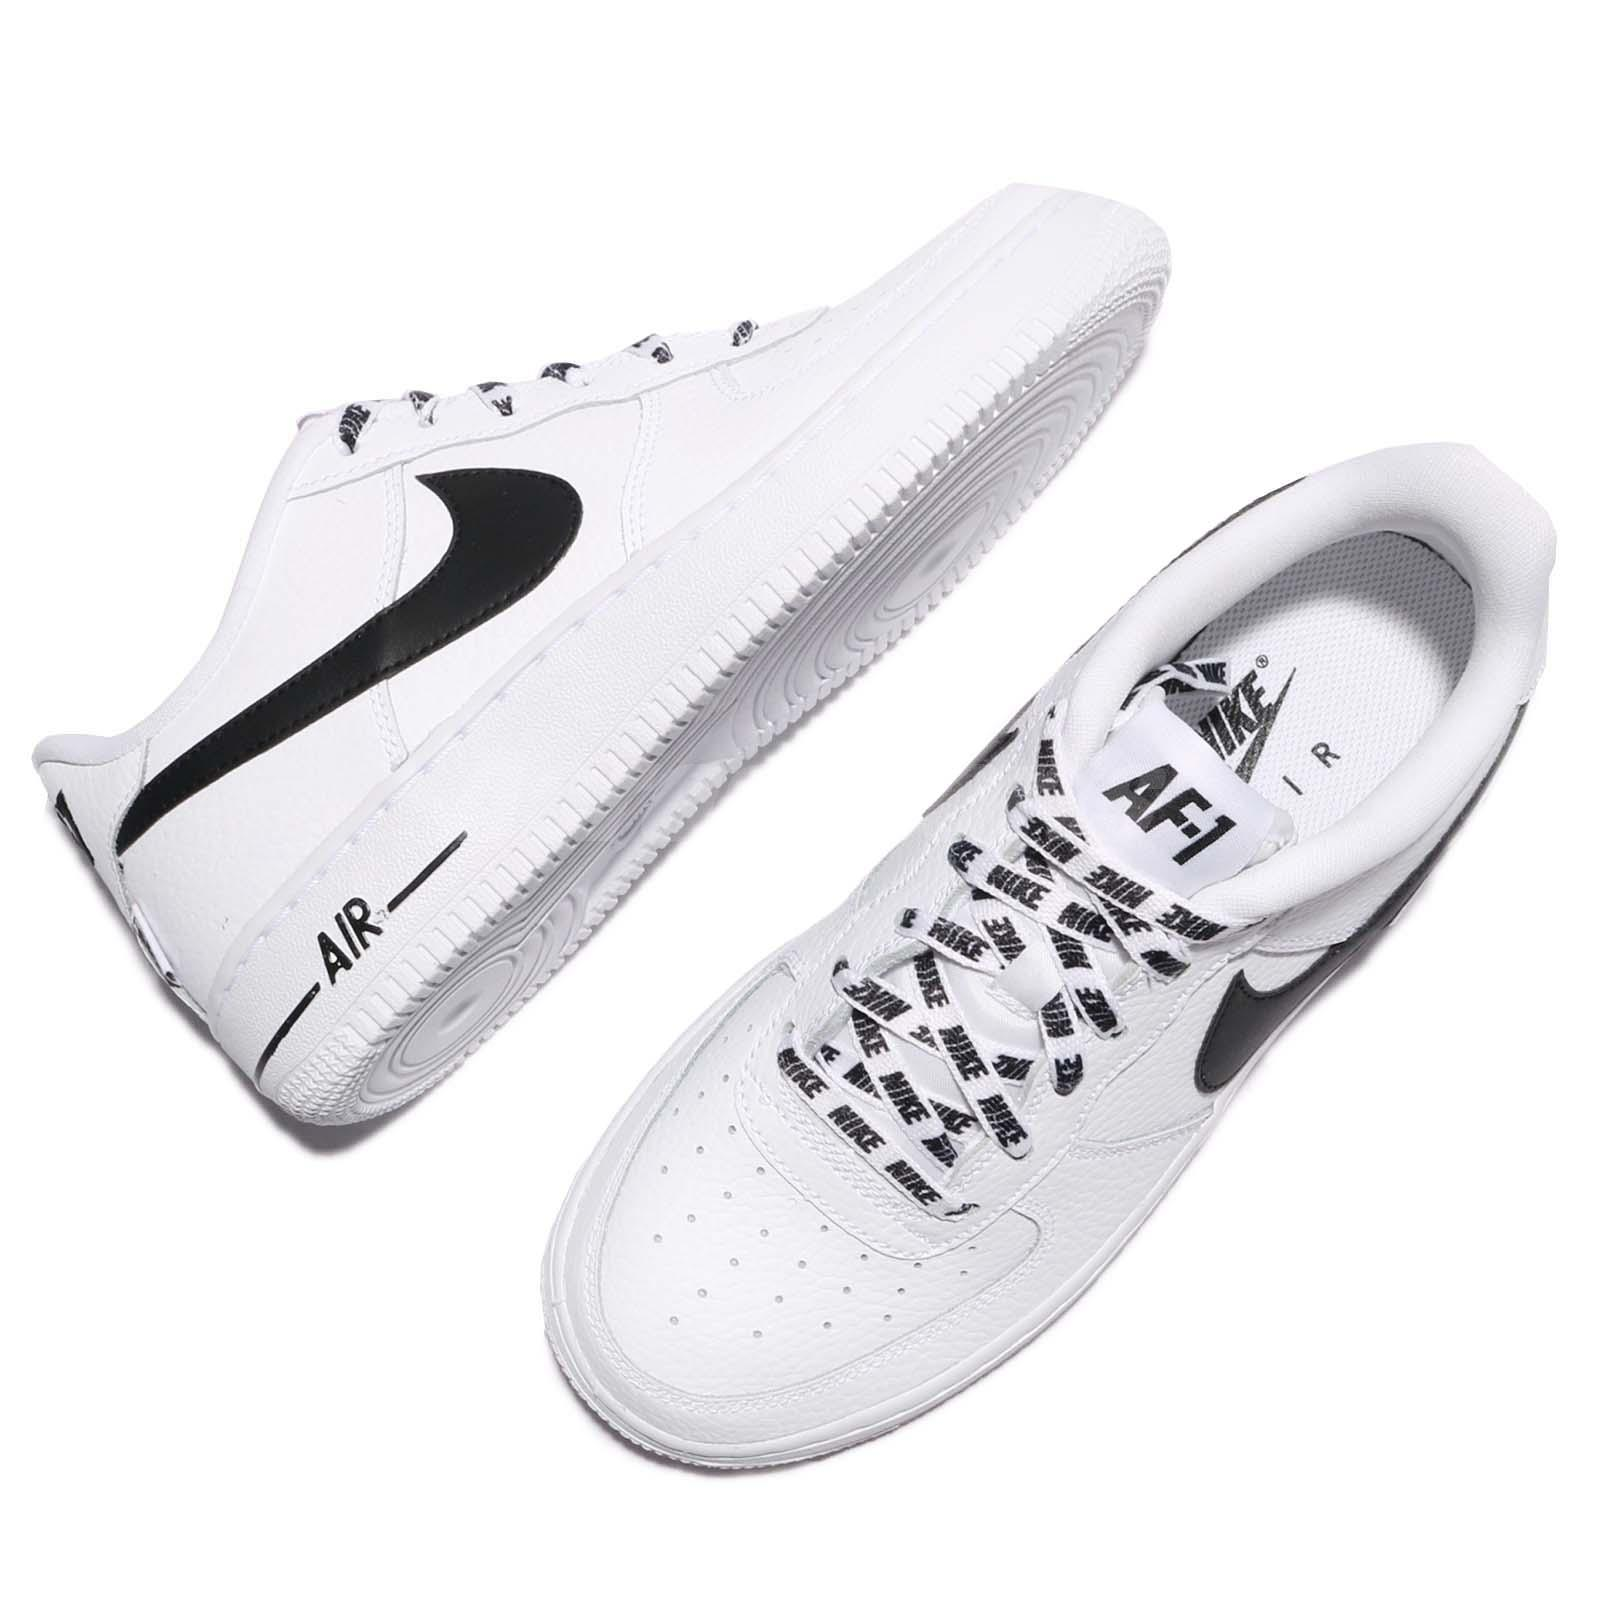 Nike Air Force 1 LV8 GS Low NBA White Black Leather Kids Women Shoes ... bcdca2b8f